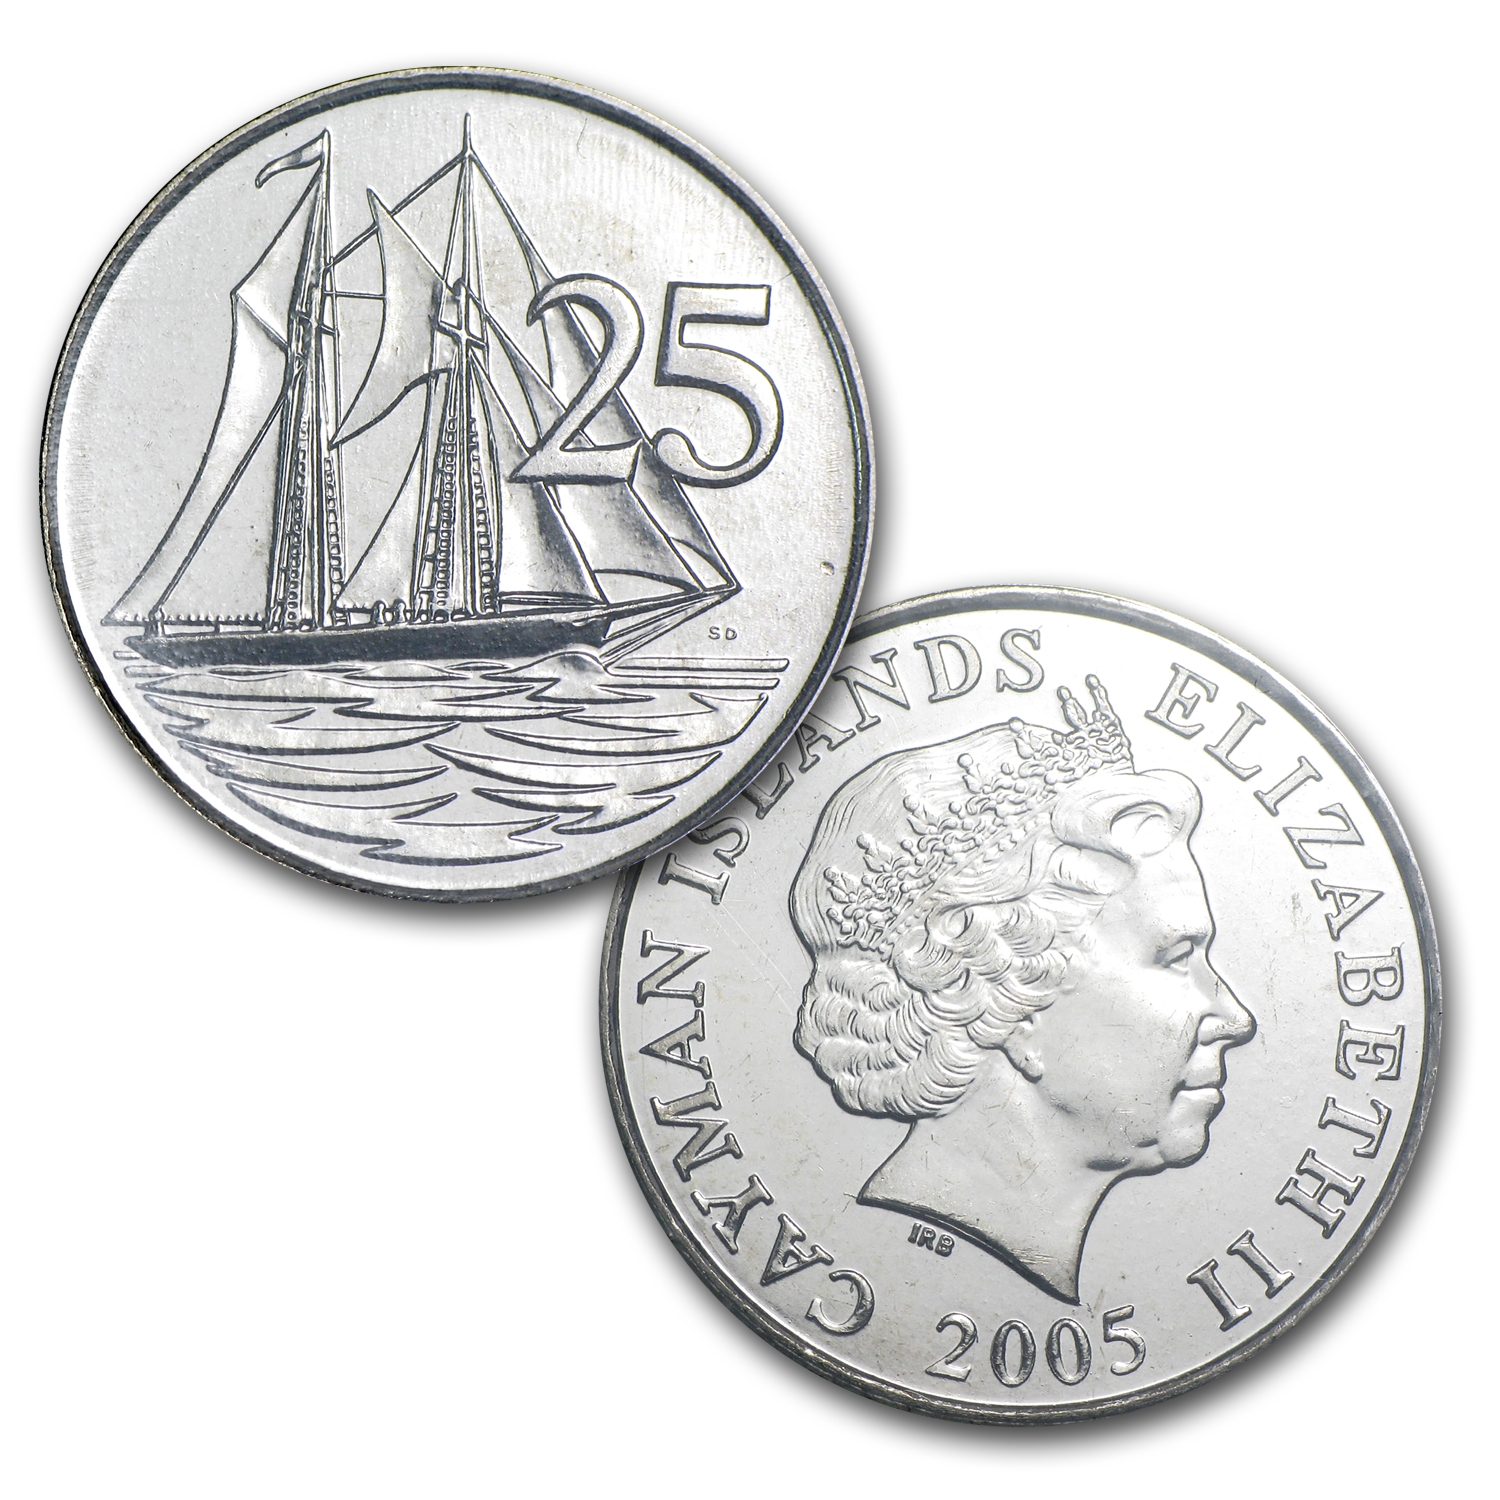 Cayman Islands Coin Set - 4 Coins